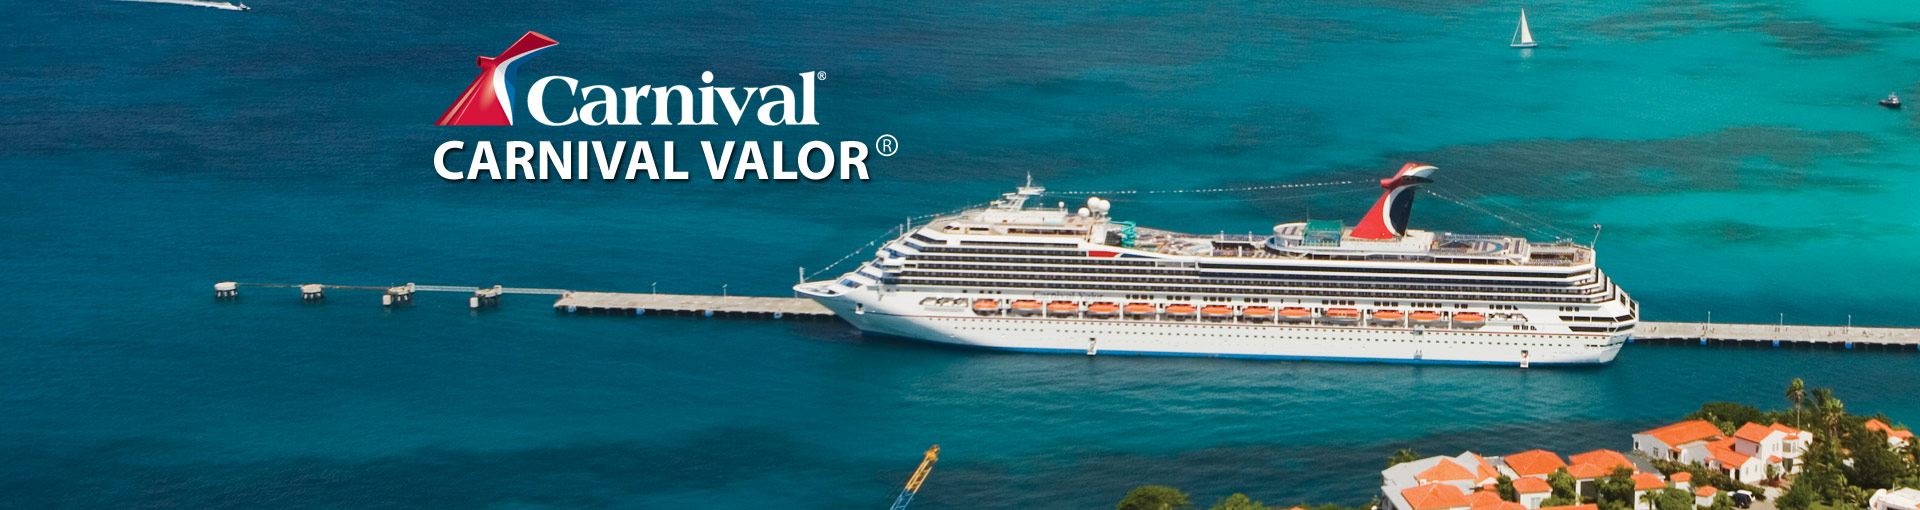 Carnival Valor Cruise Ship 2018 And 2019 Carnival Valor